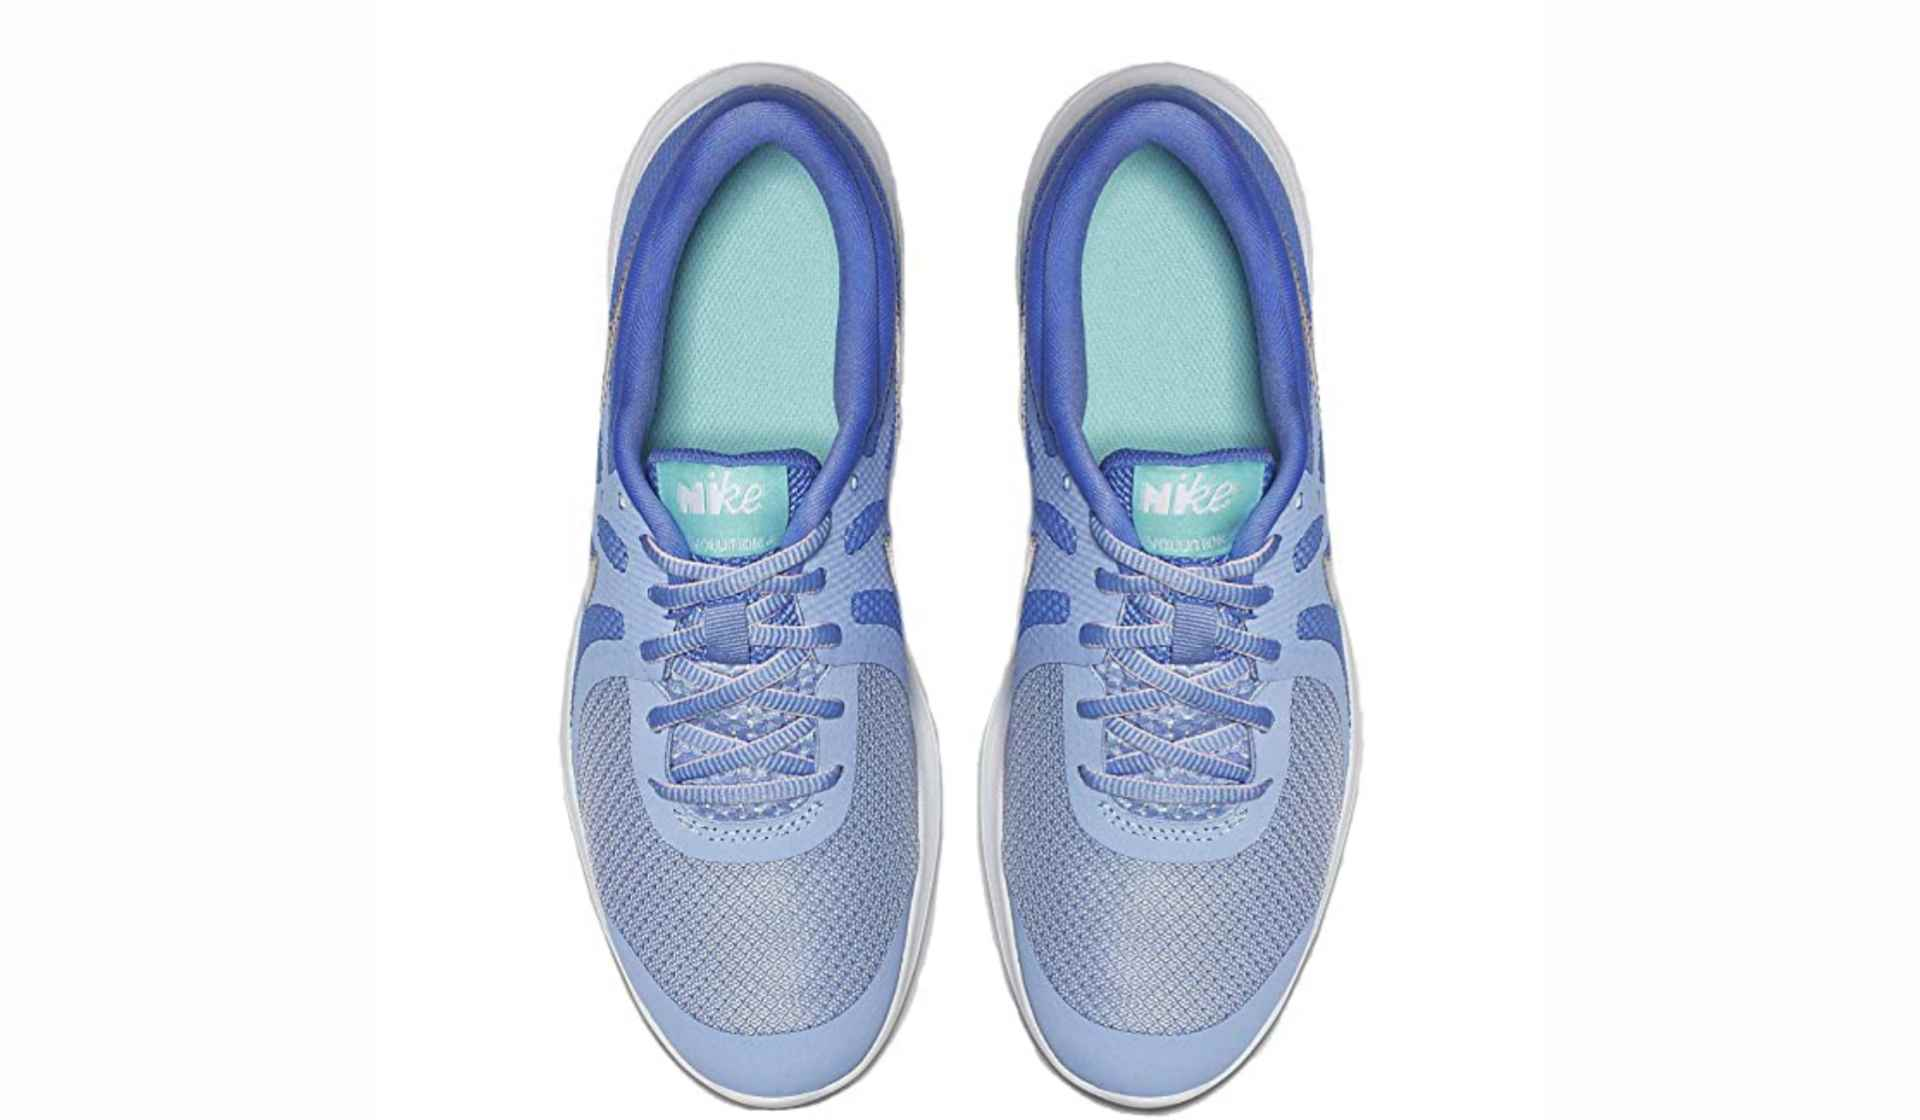 Sneakers for kids with flat foot